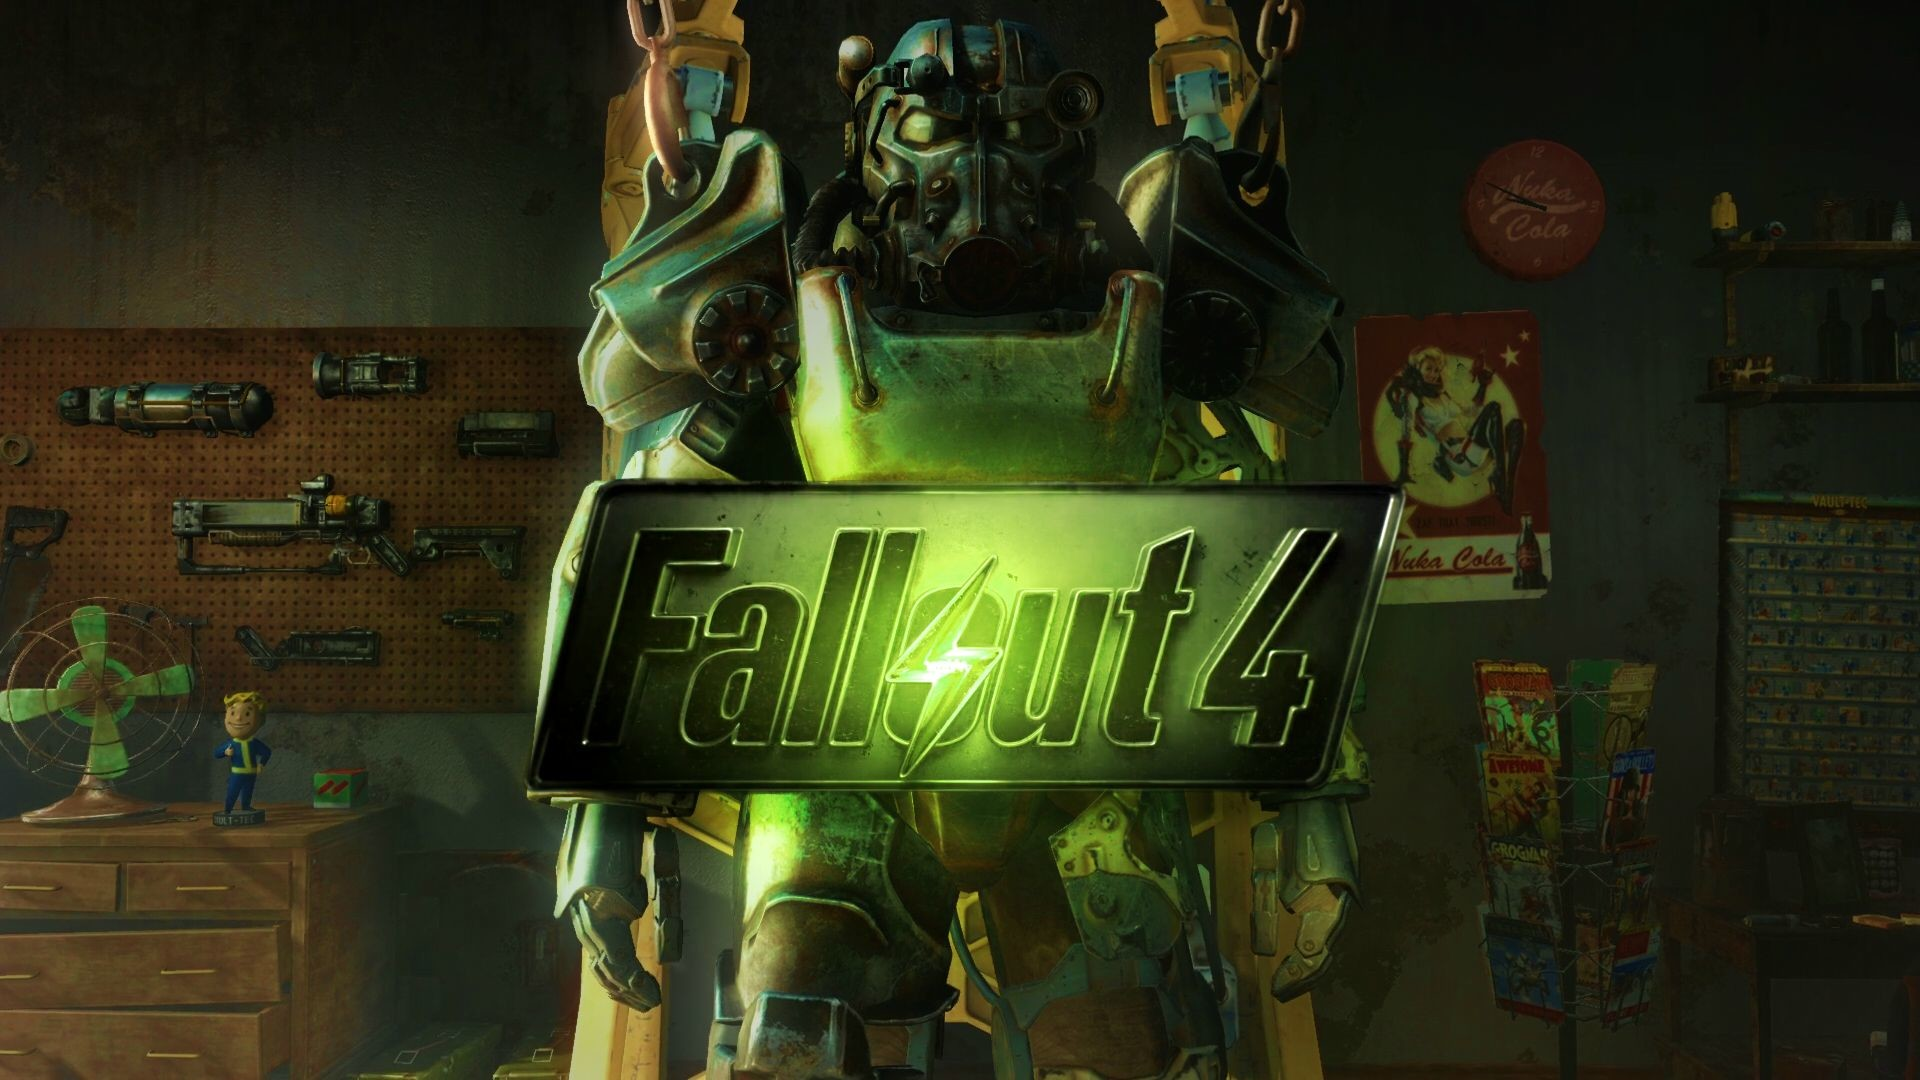 1920x1080 1080p Fallout 4 Wallpaper I made ...